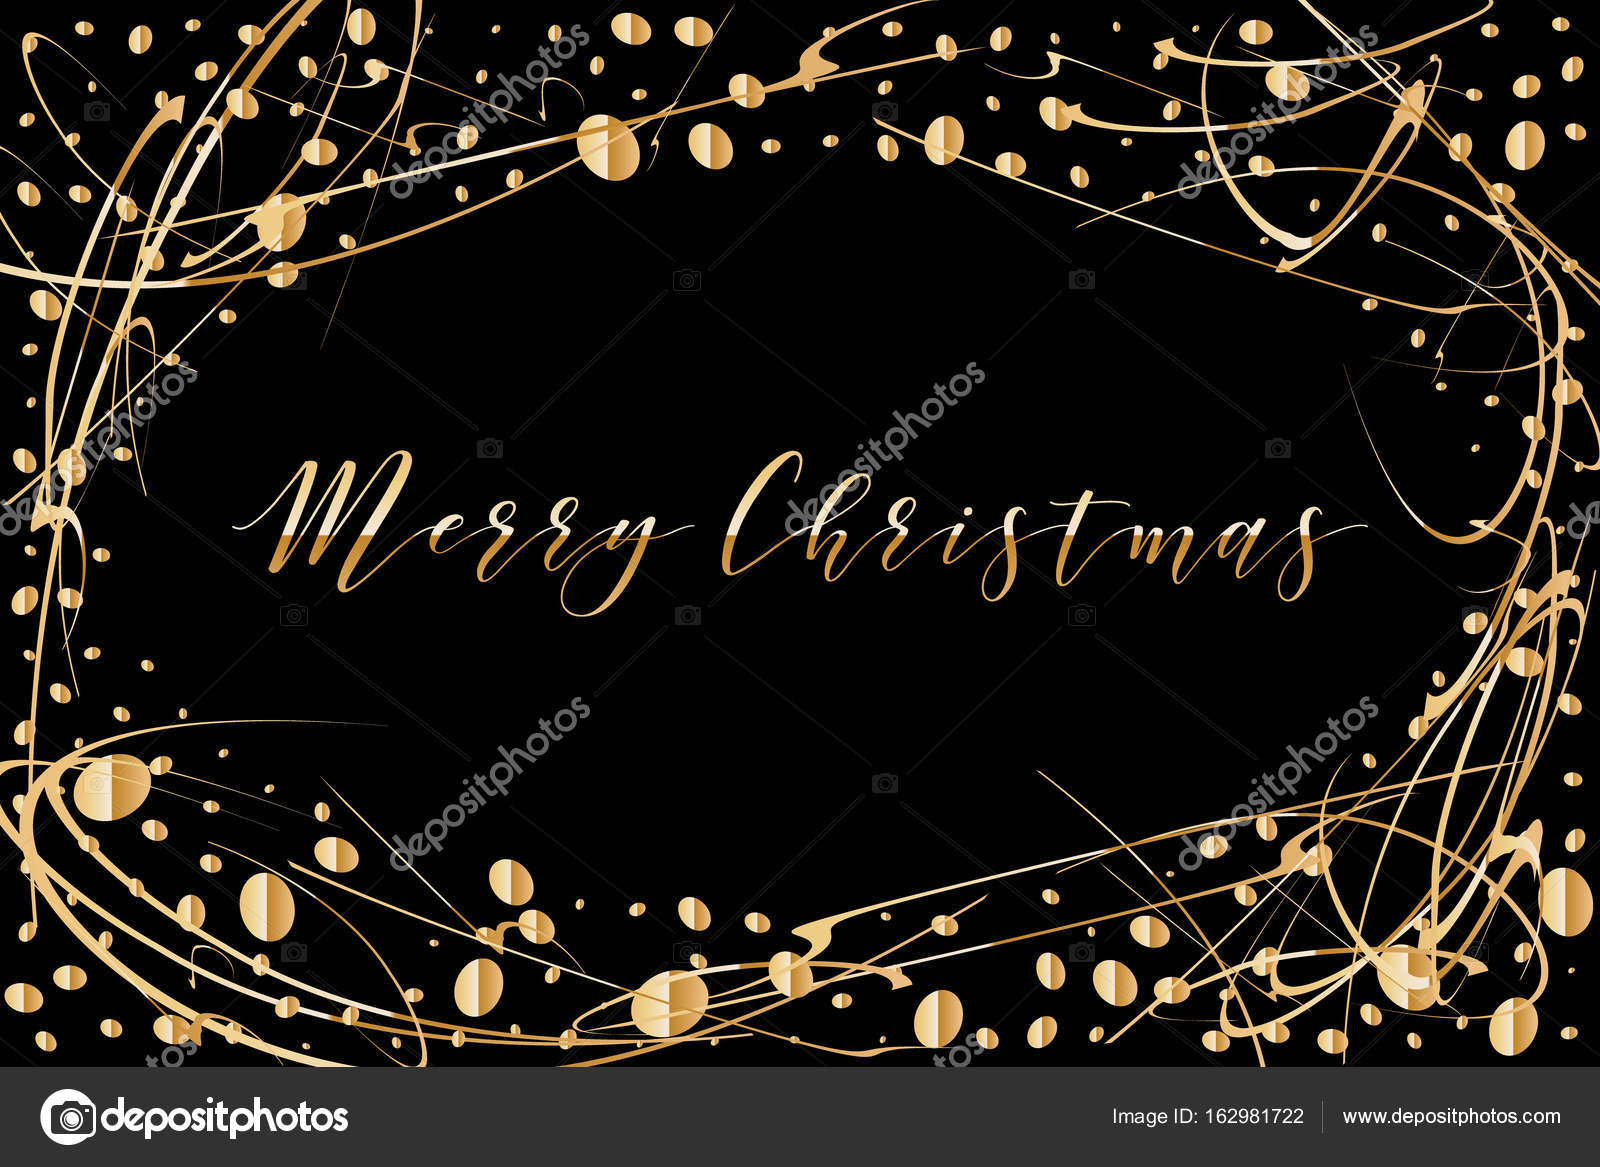 vector happy new year 2018 background with shiny drops and glitter on black stock vector